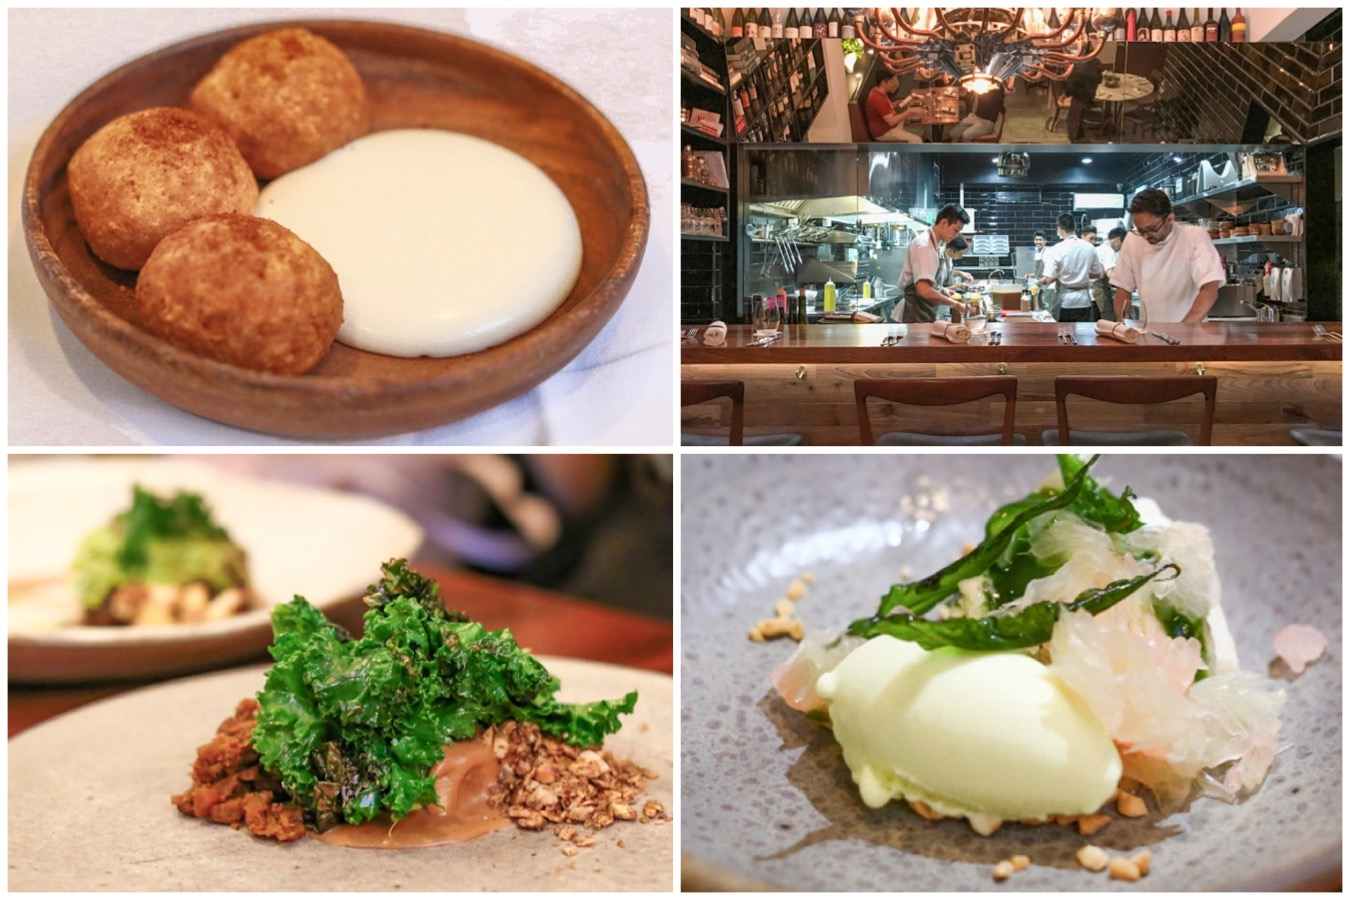 Cheek by Jowl - Michelin-Starred Modern Australian Restaurant With Multi-Cultural Influences. On Boon Tat Street